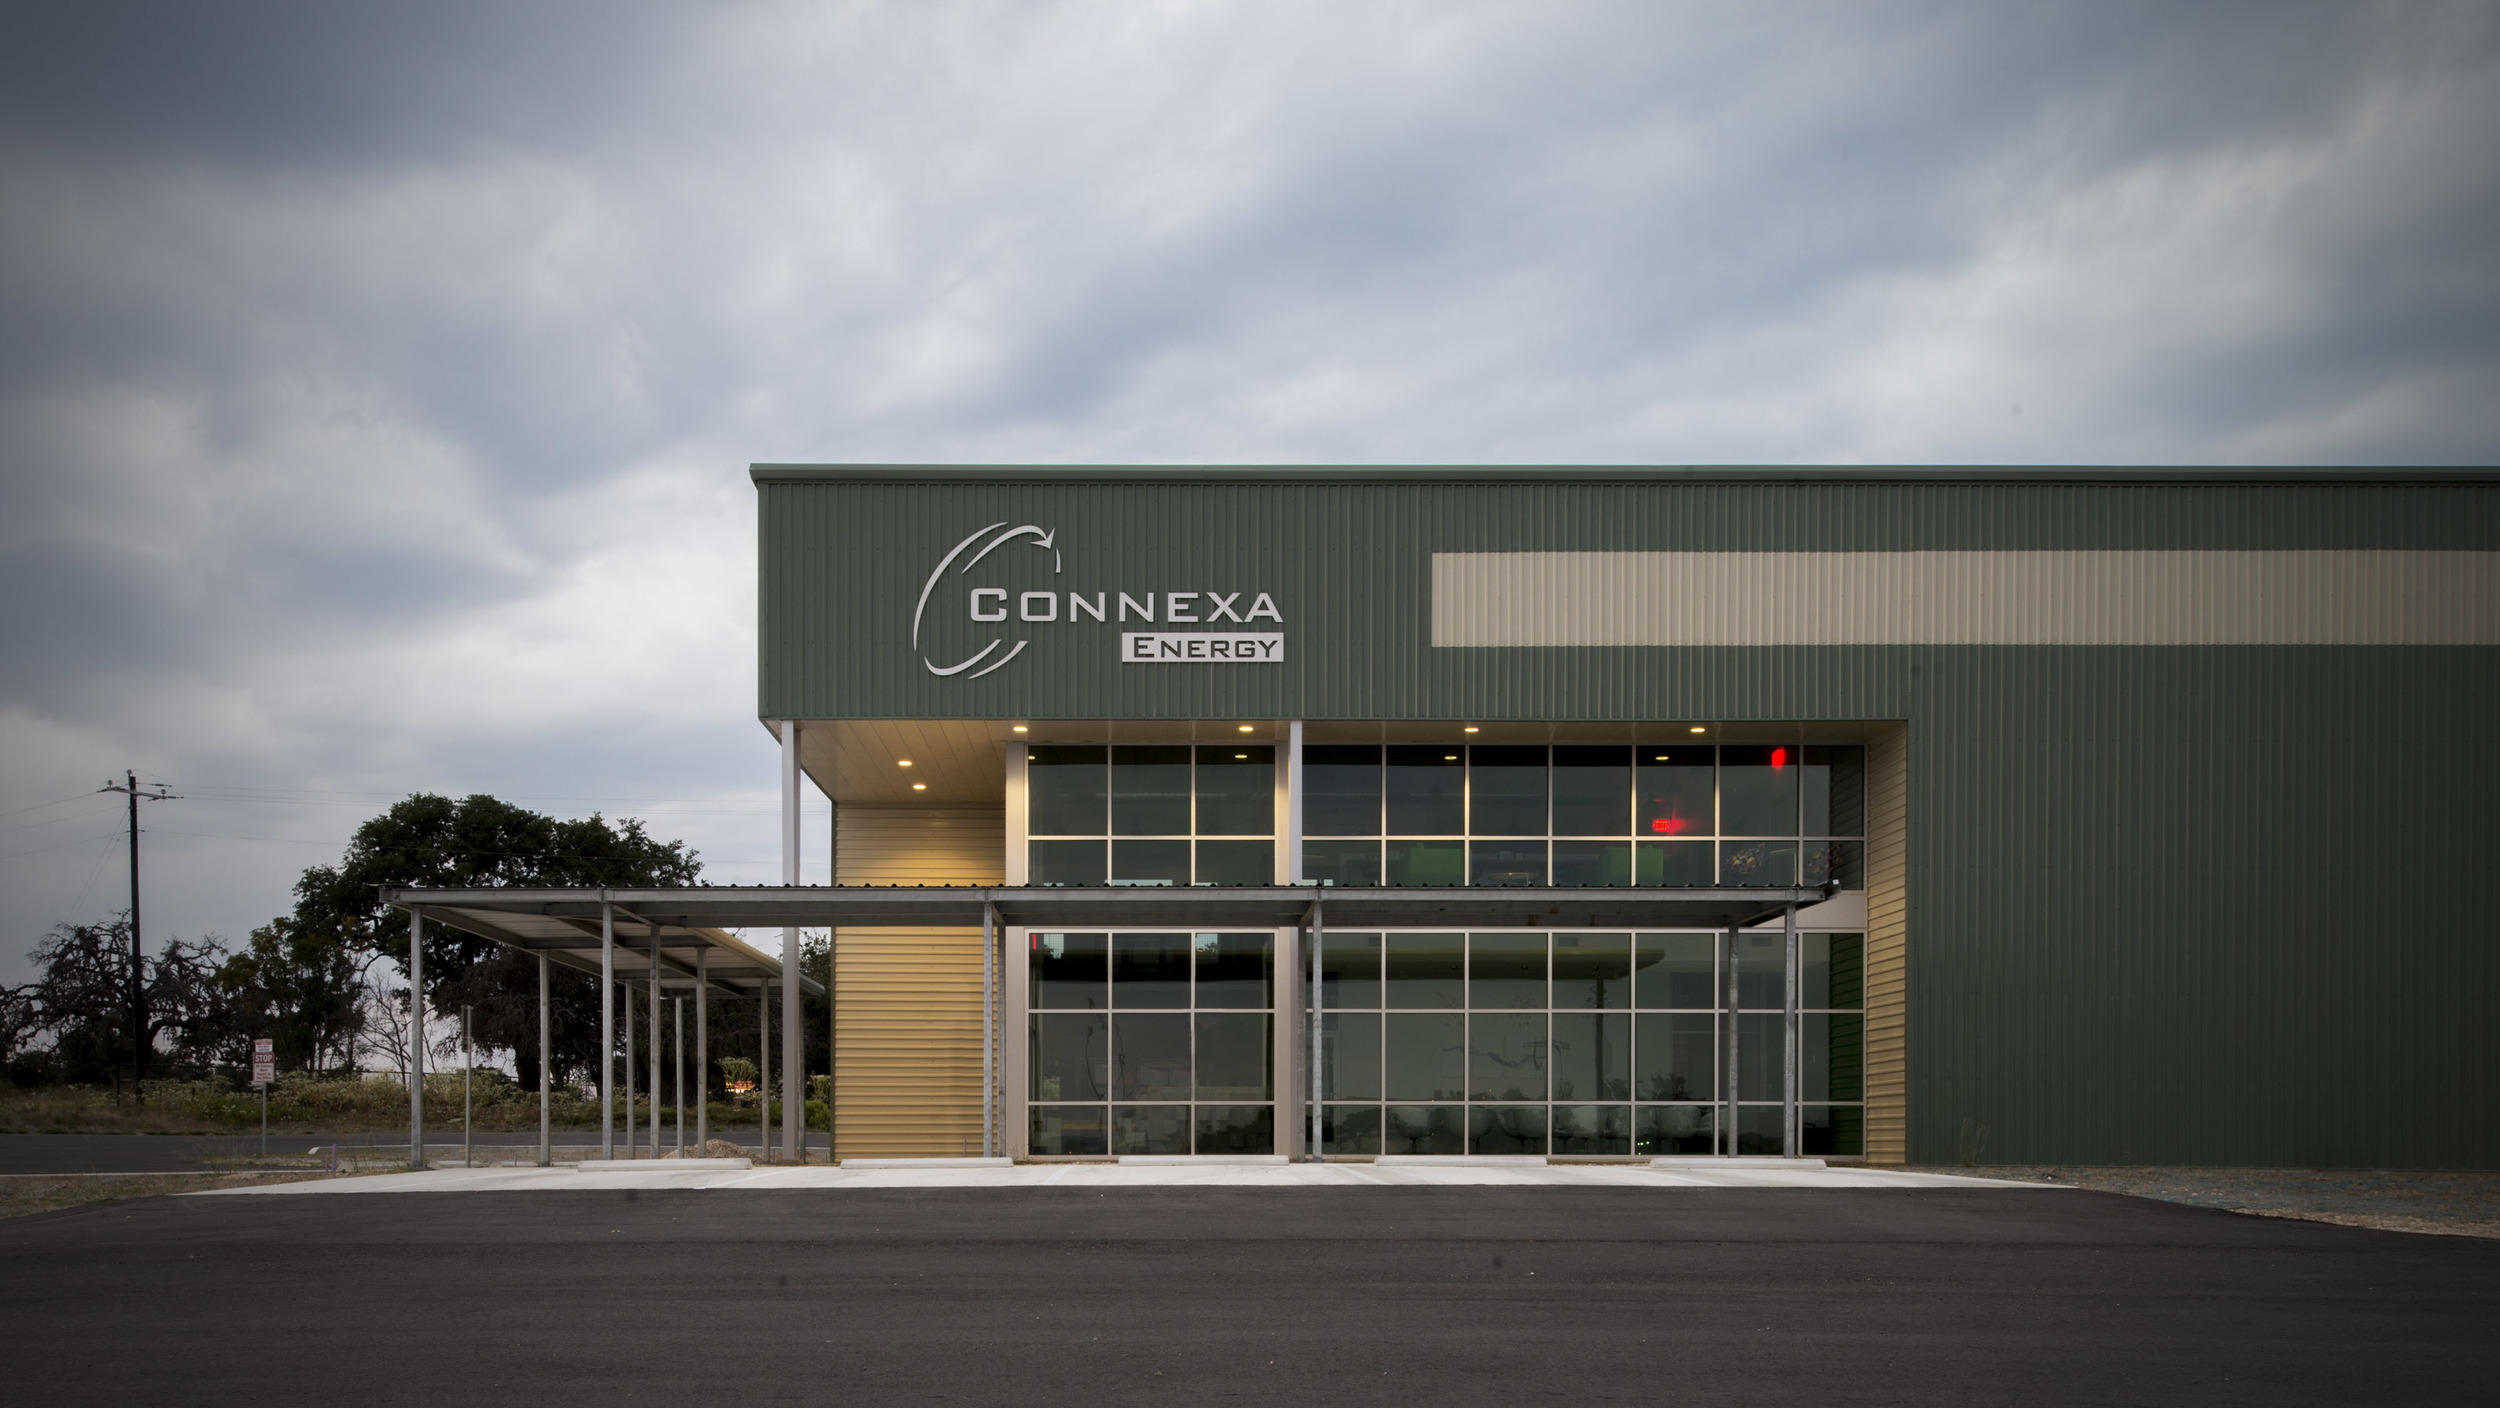 Connexa Energy Headquarters